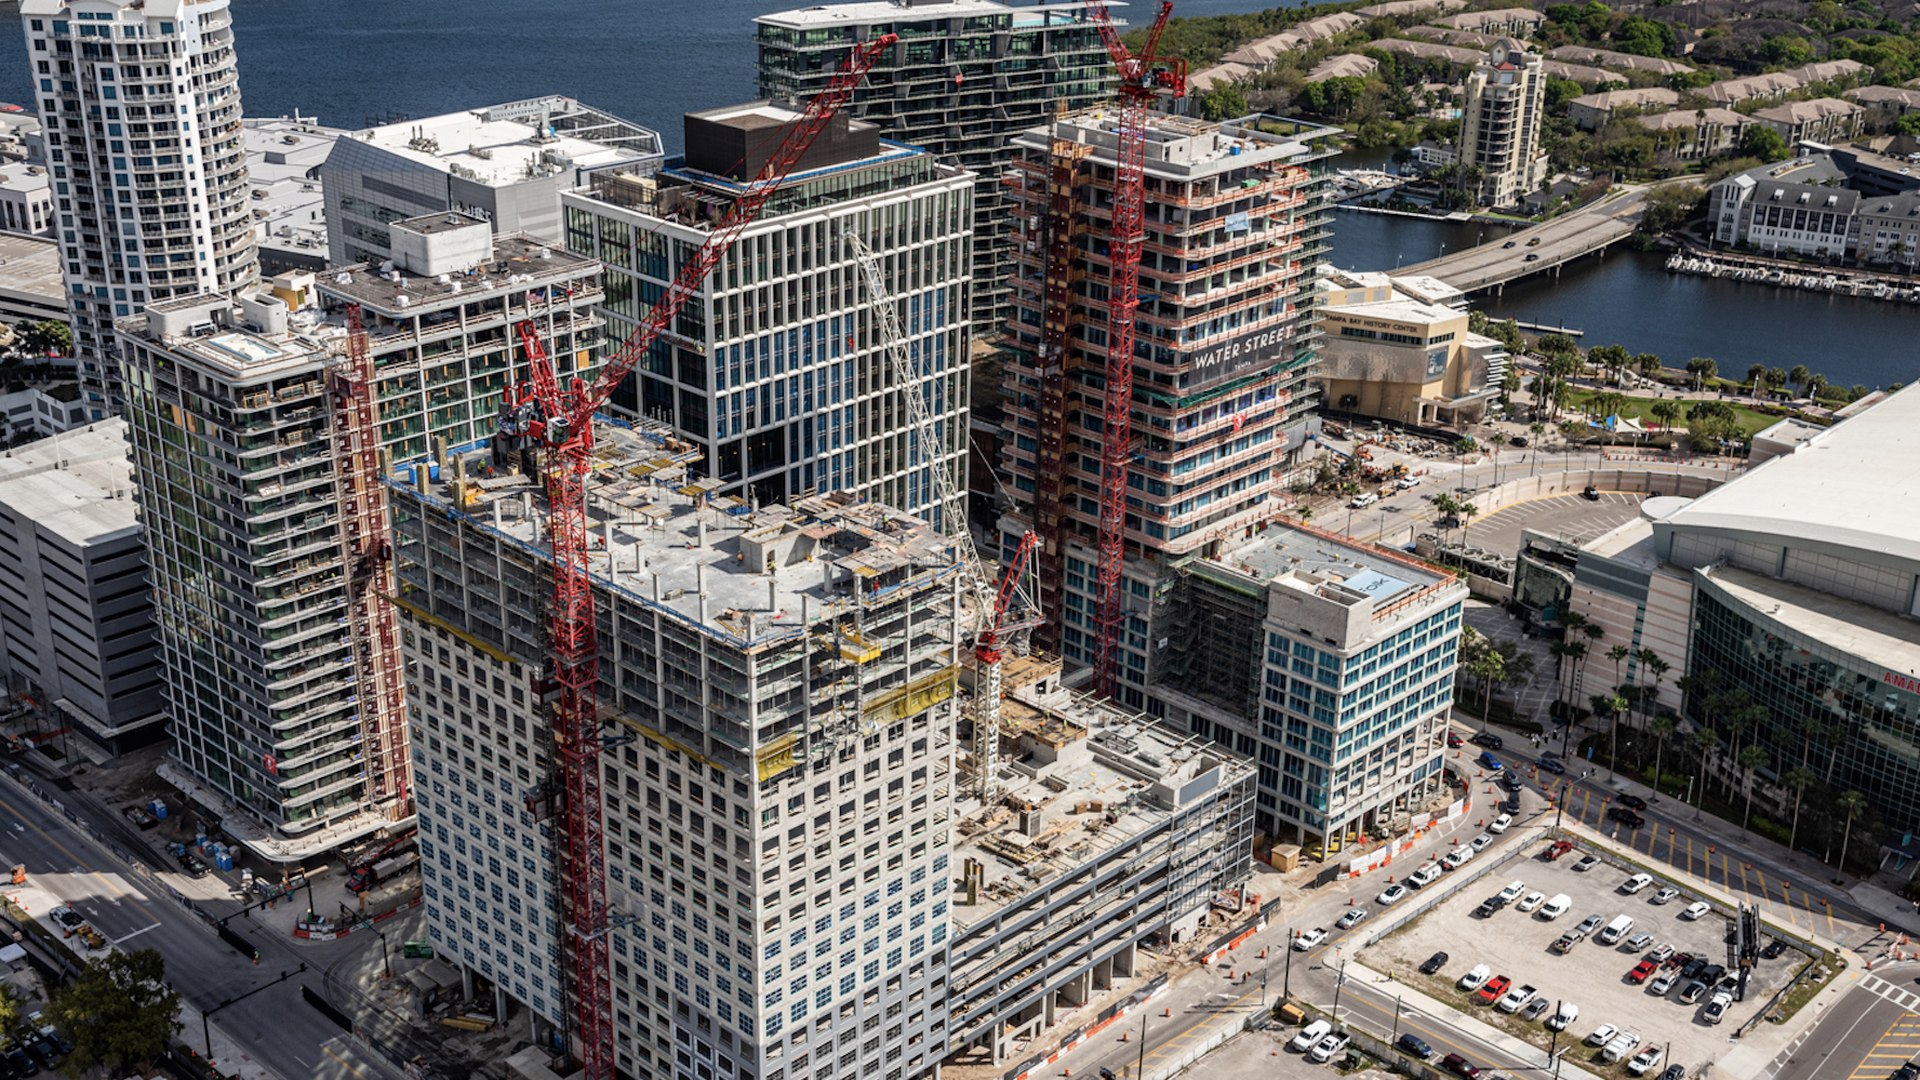 Water Street Tampa under construction